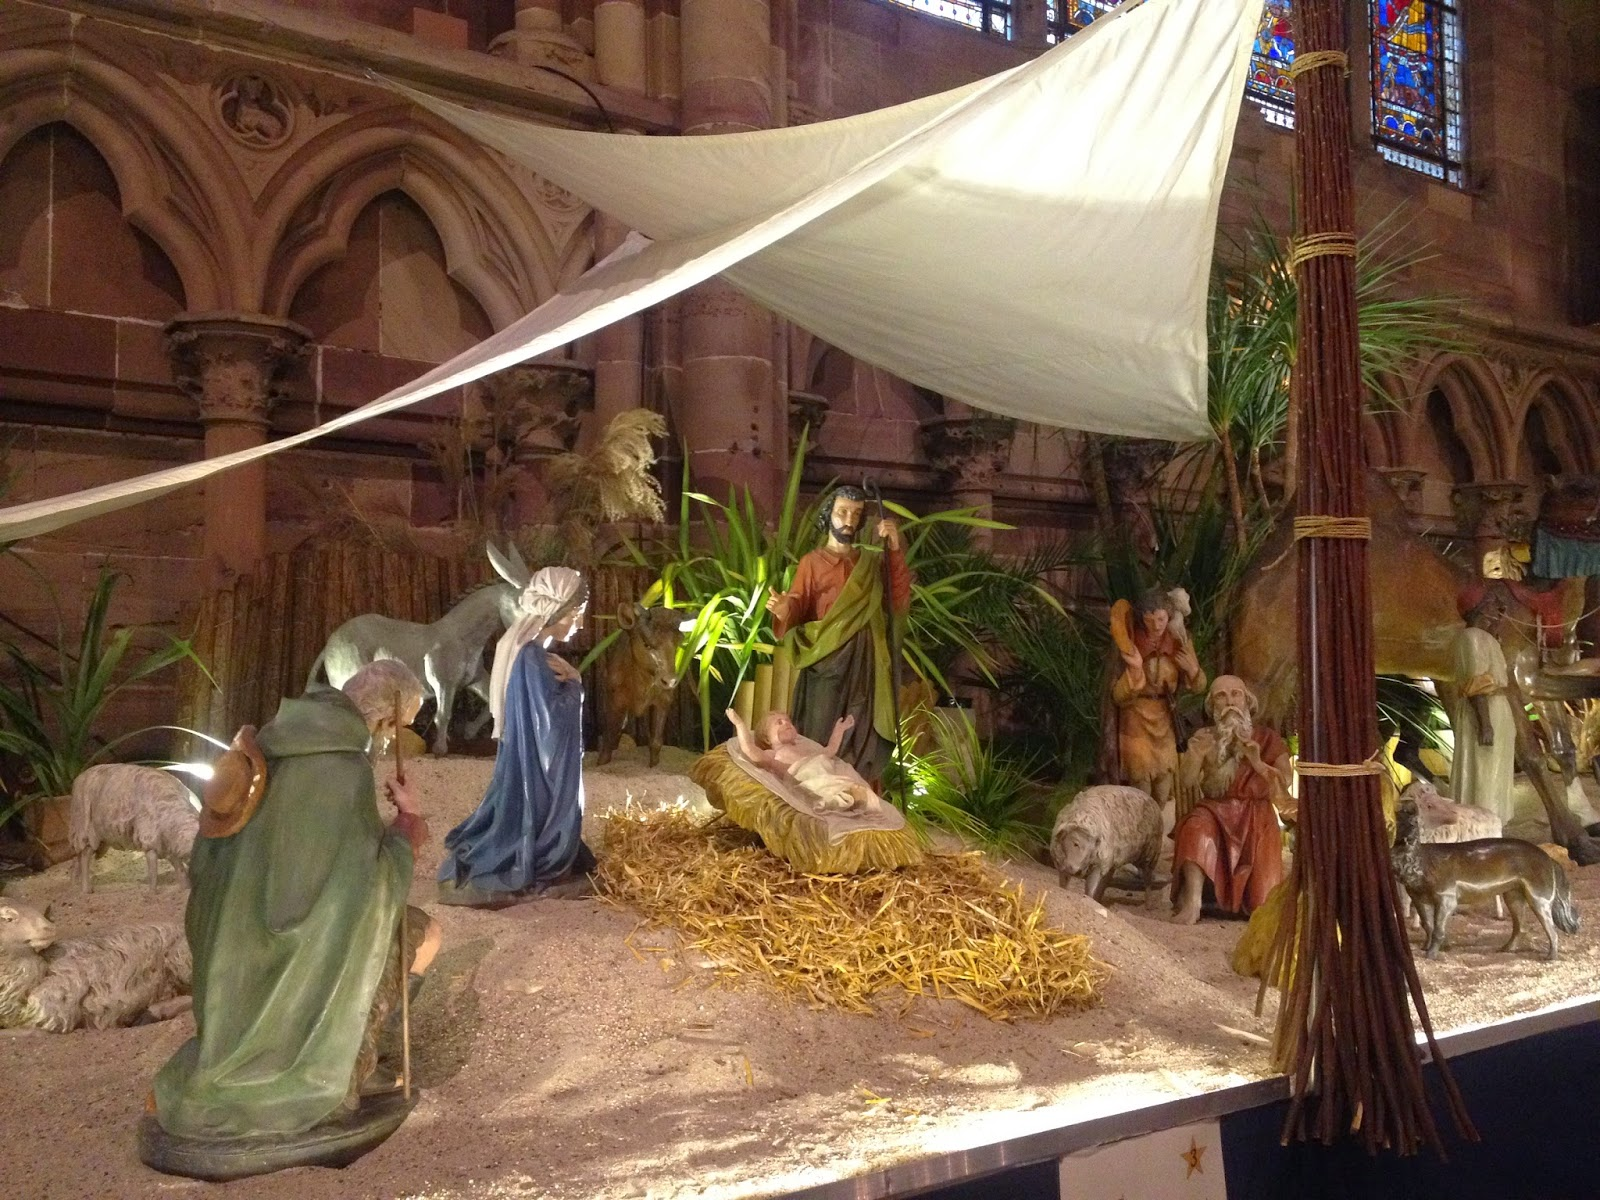 Nativity in the Strasbourg Cathedral